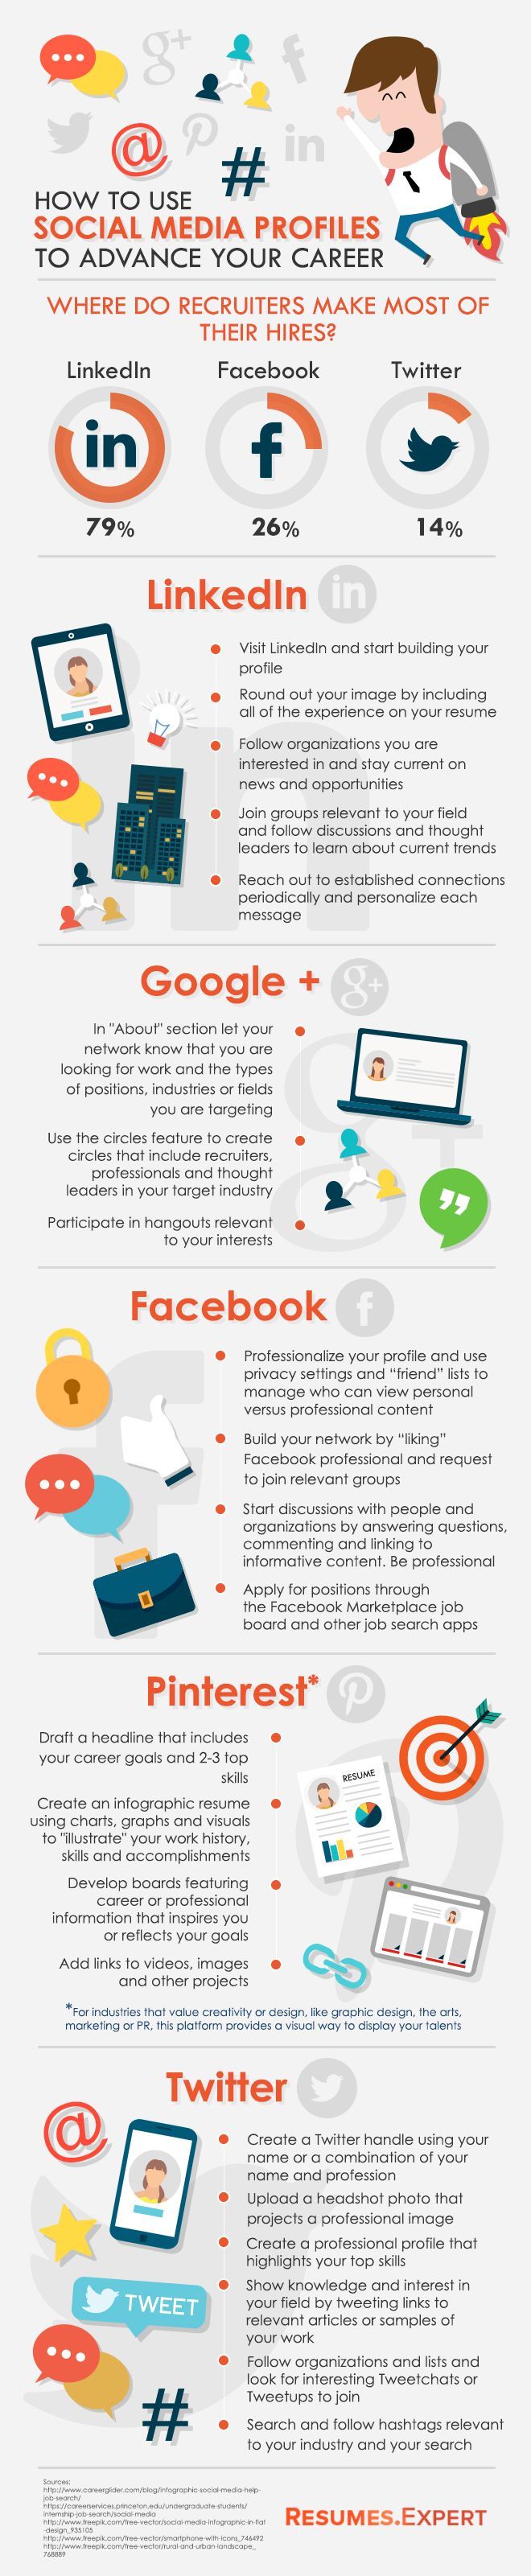 Social media profiles can be more important than our resumes while looking for a new job.